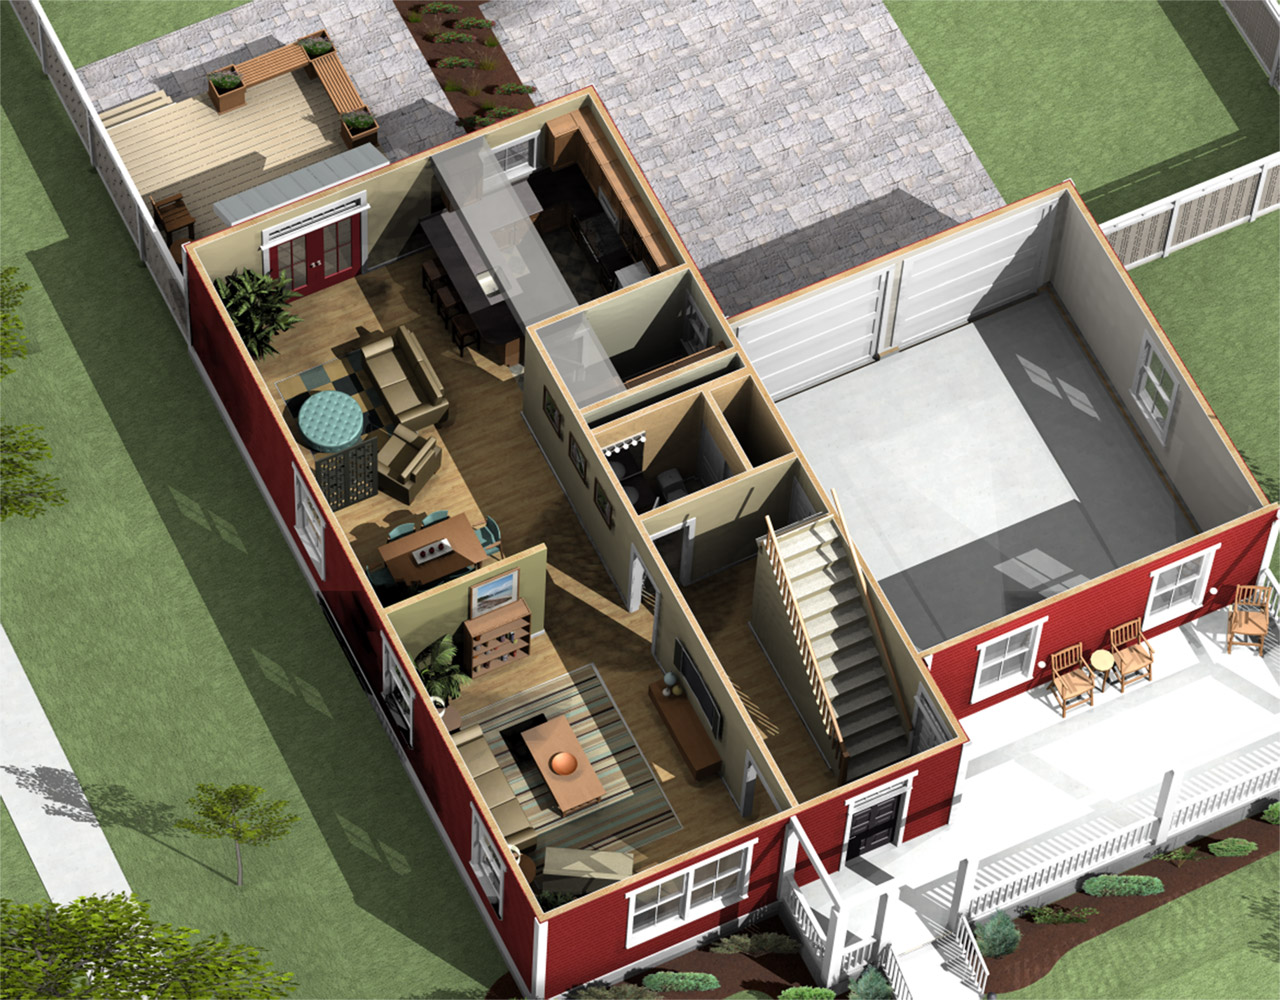 RUIZ Fig 3 - 29+ Simple Small House Design Village Images